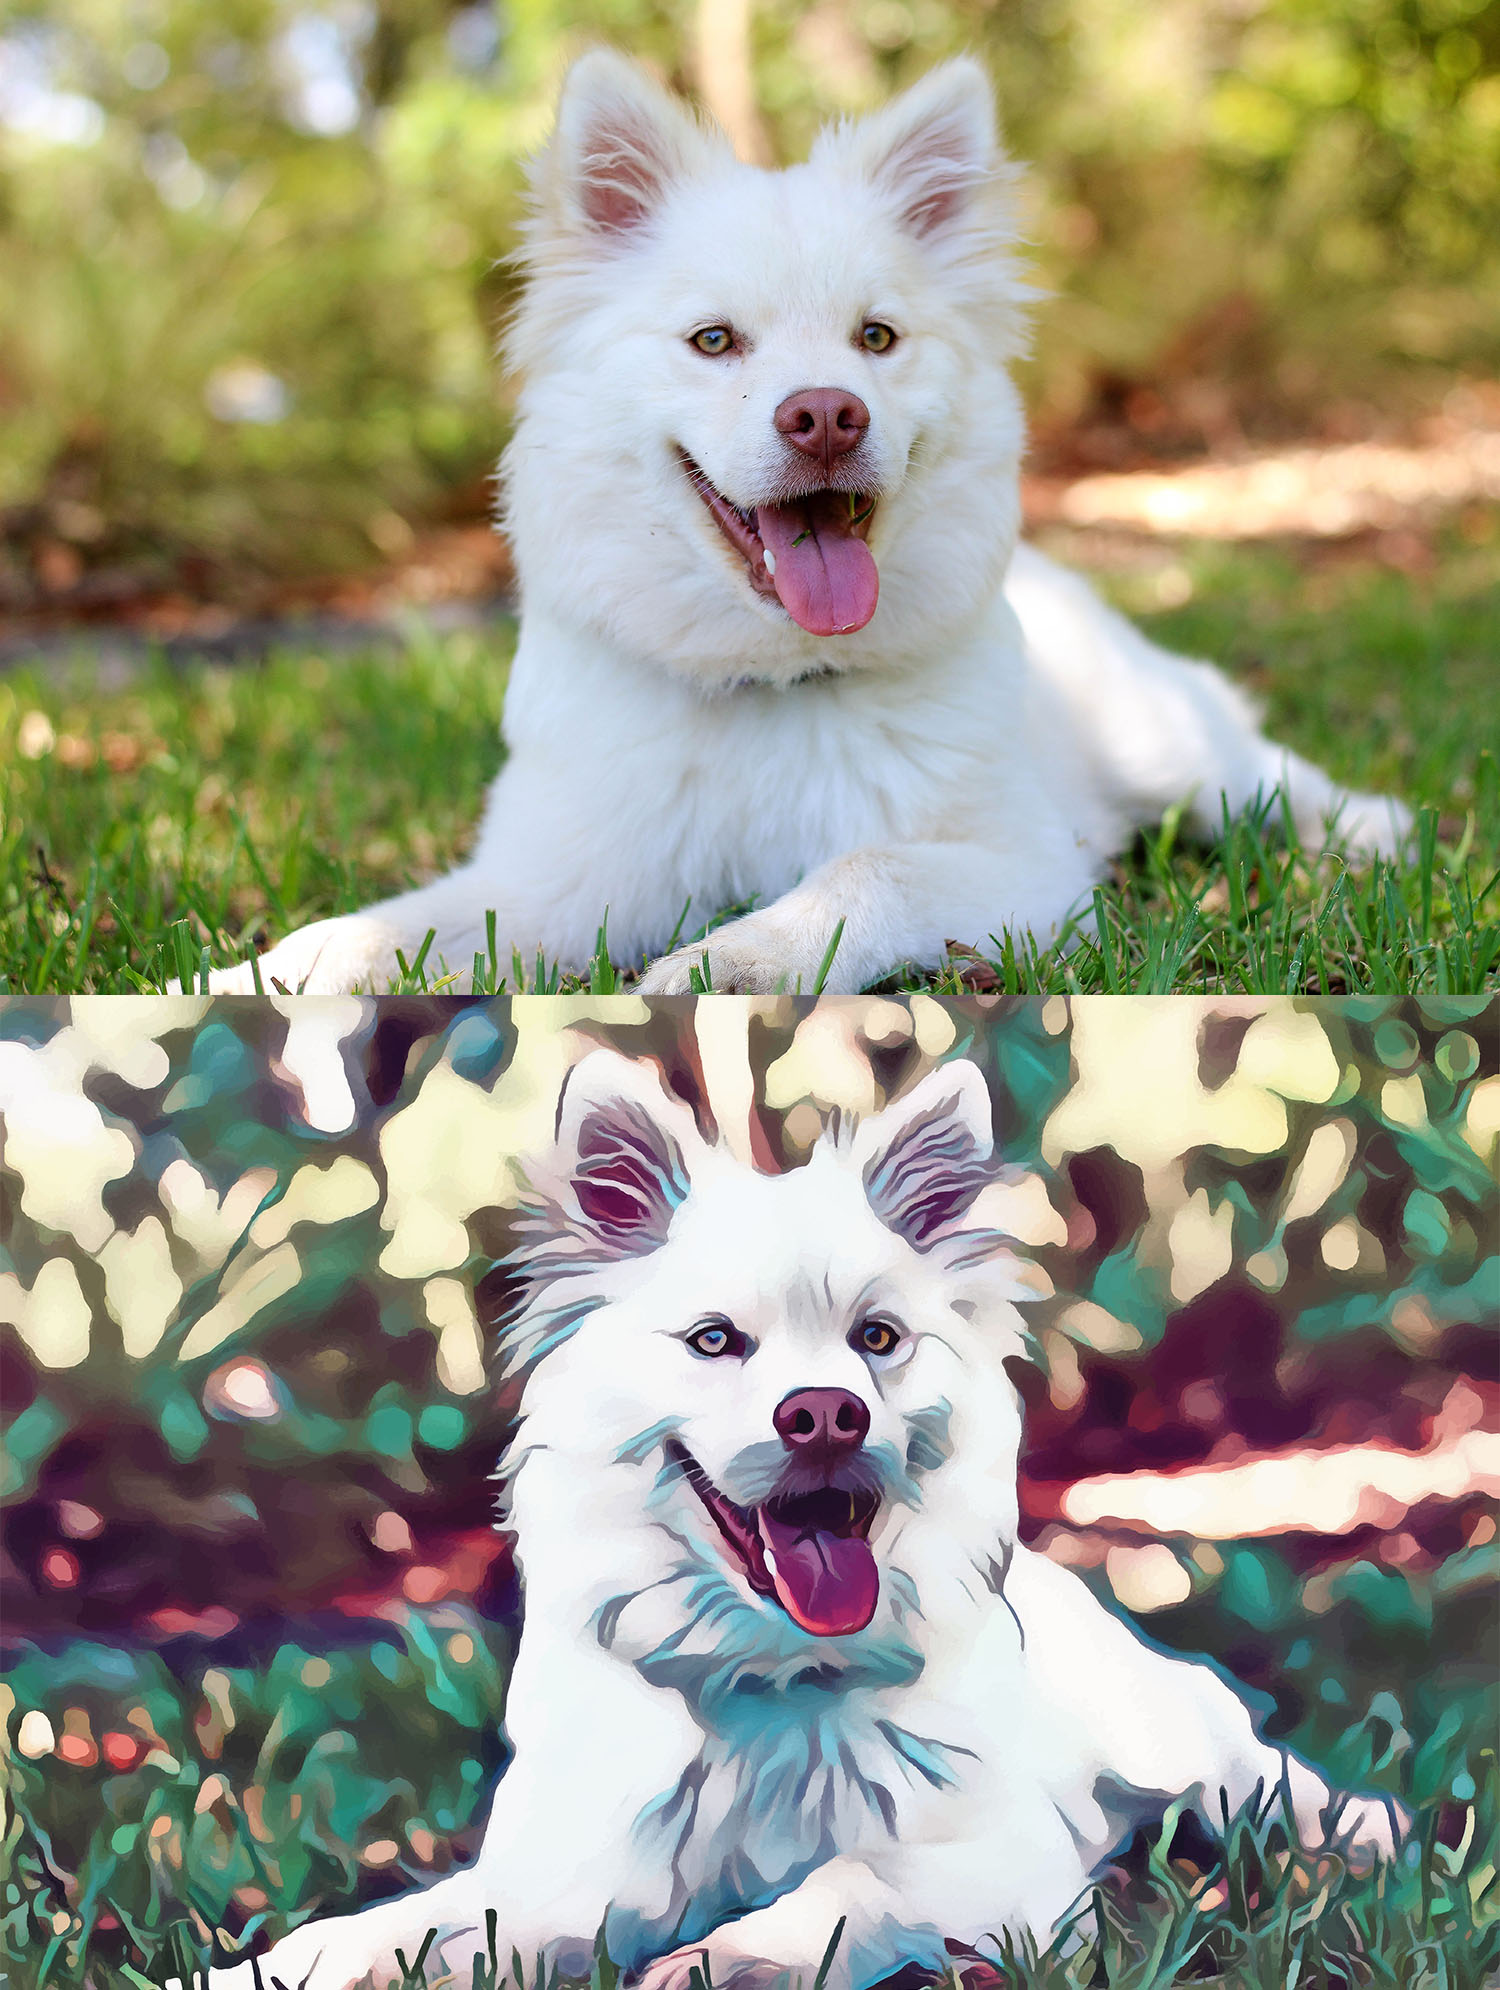 Before and after stylized image of a white dog sitting in the grass